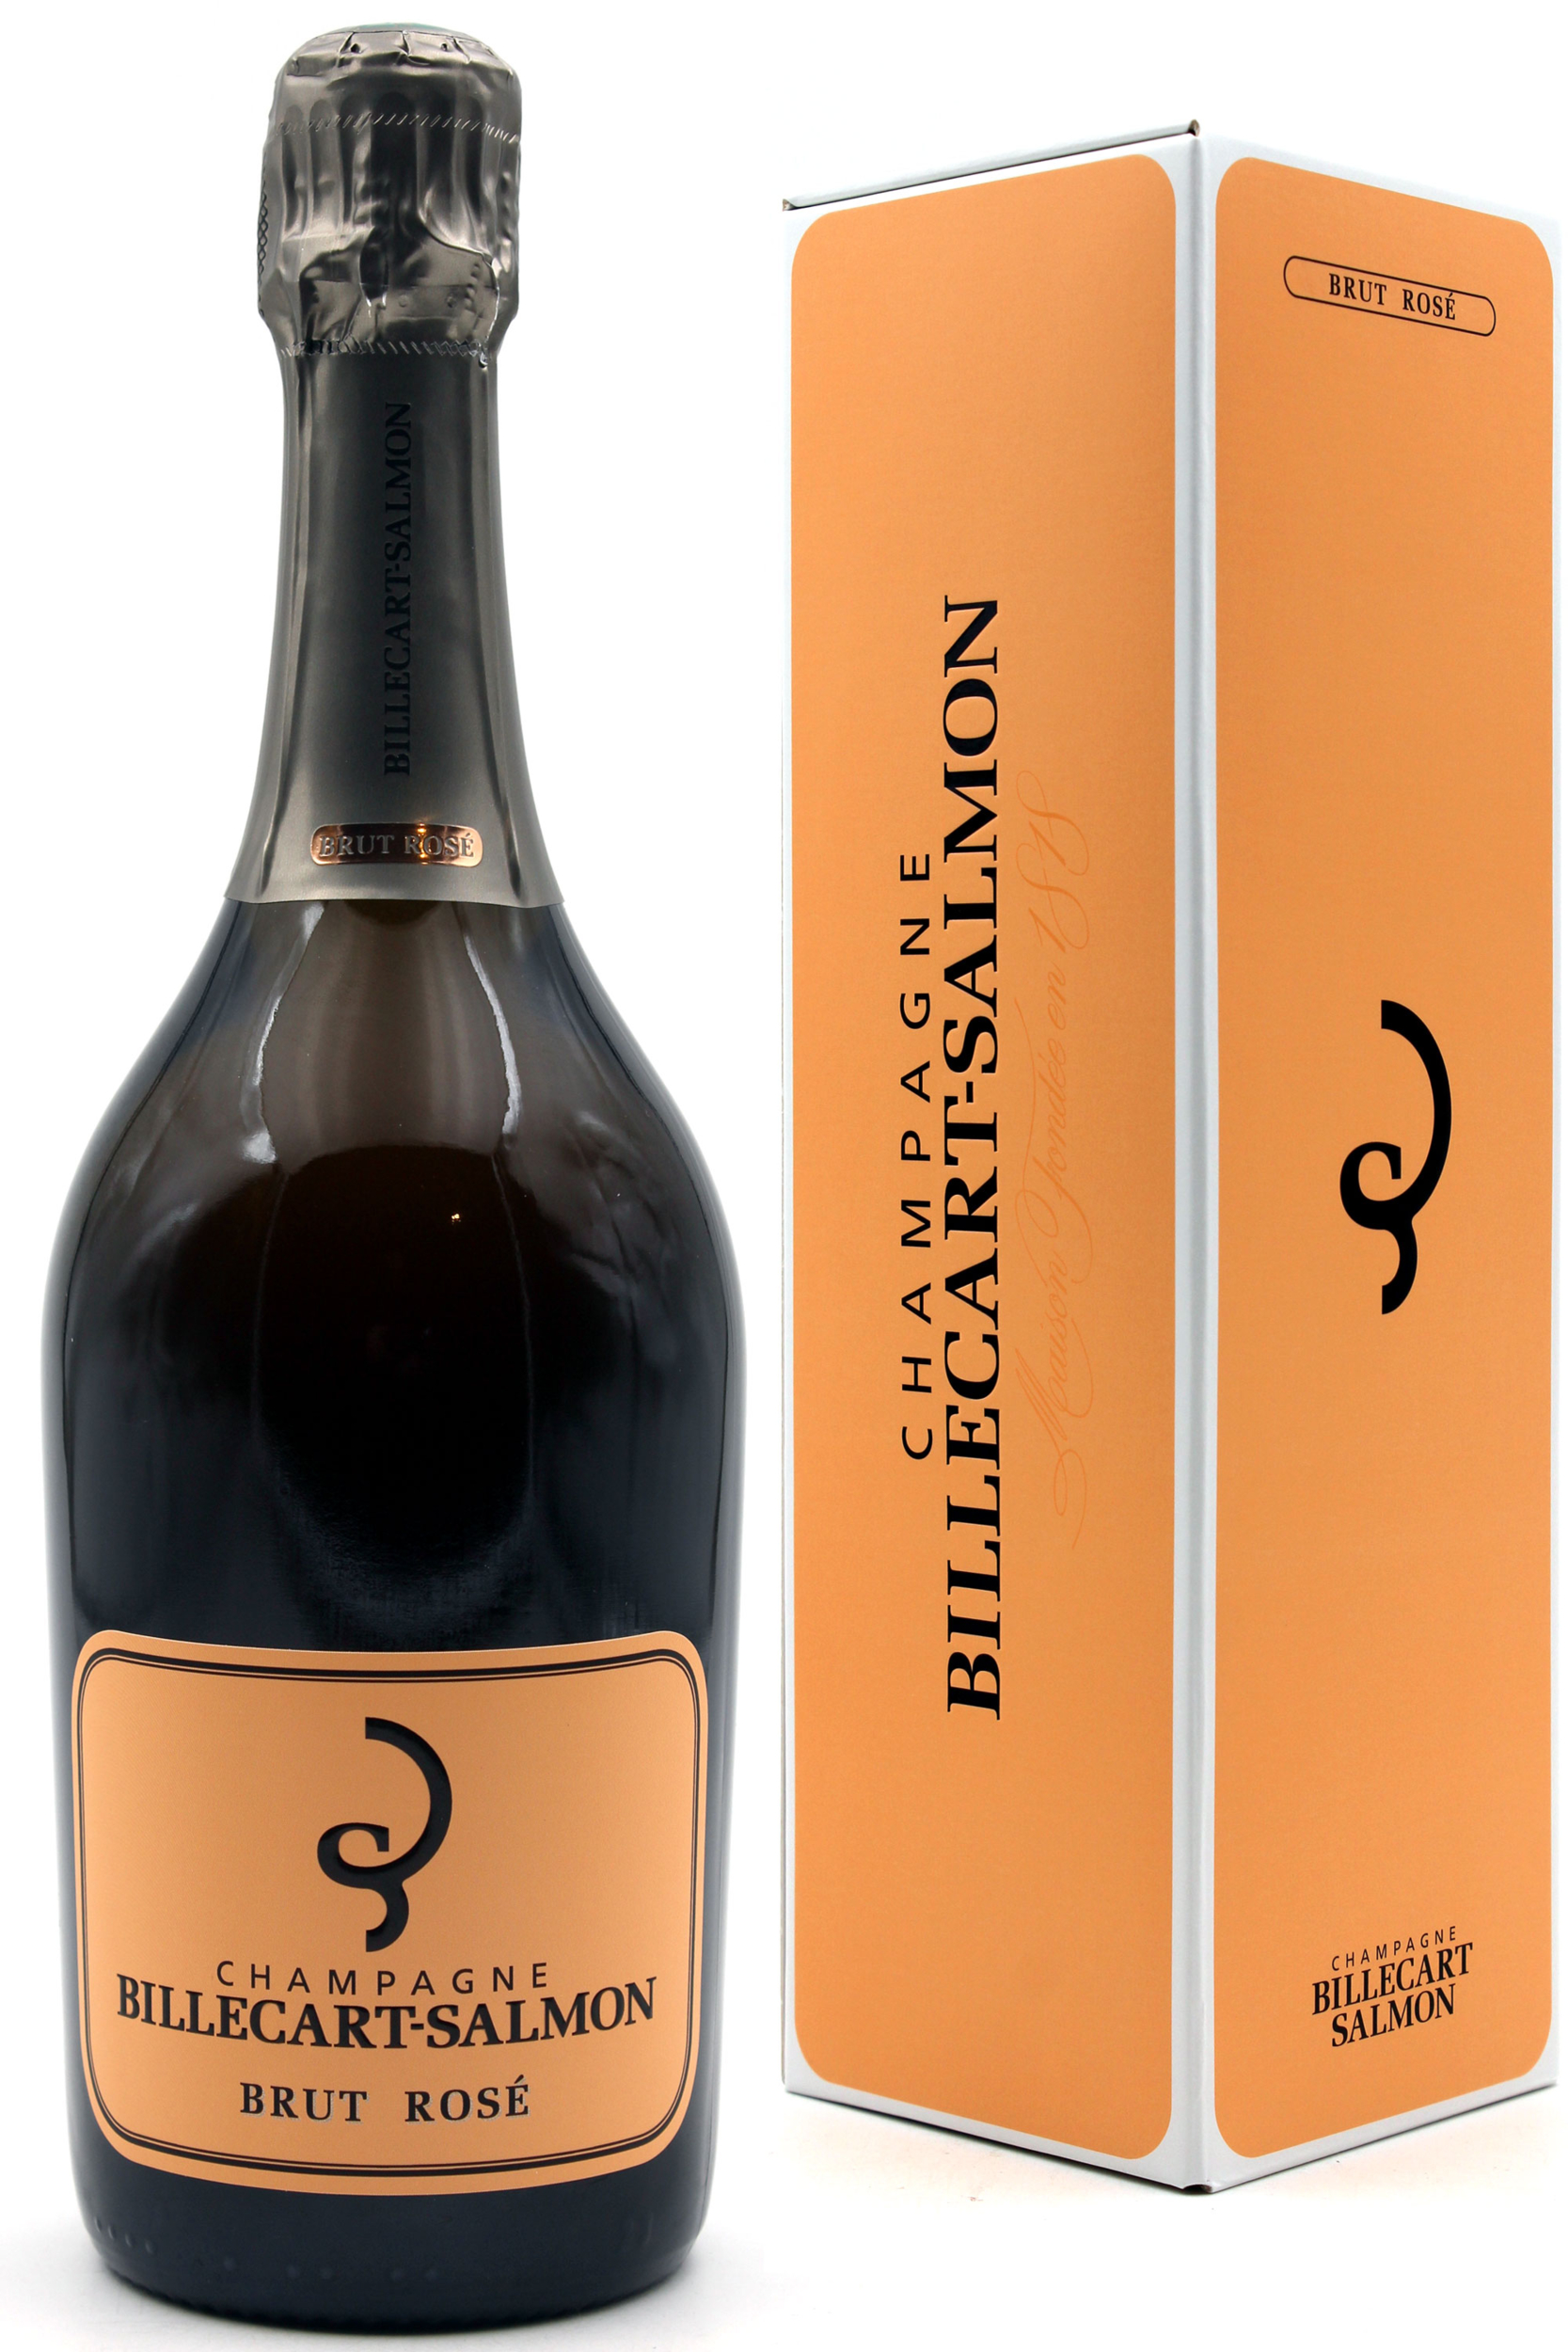 Champagne - Billecart-Salmon - Brut Rosé - 75cl